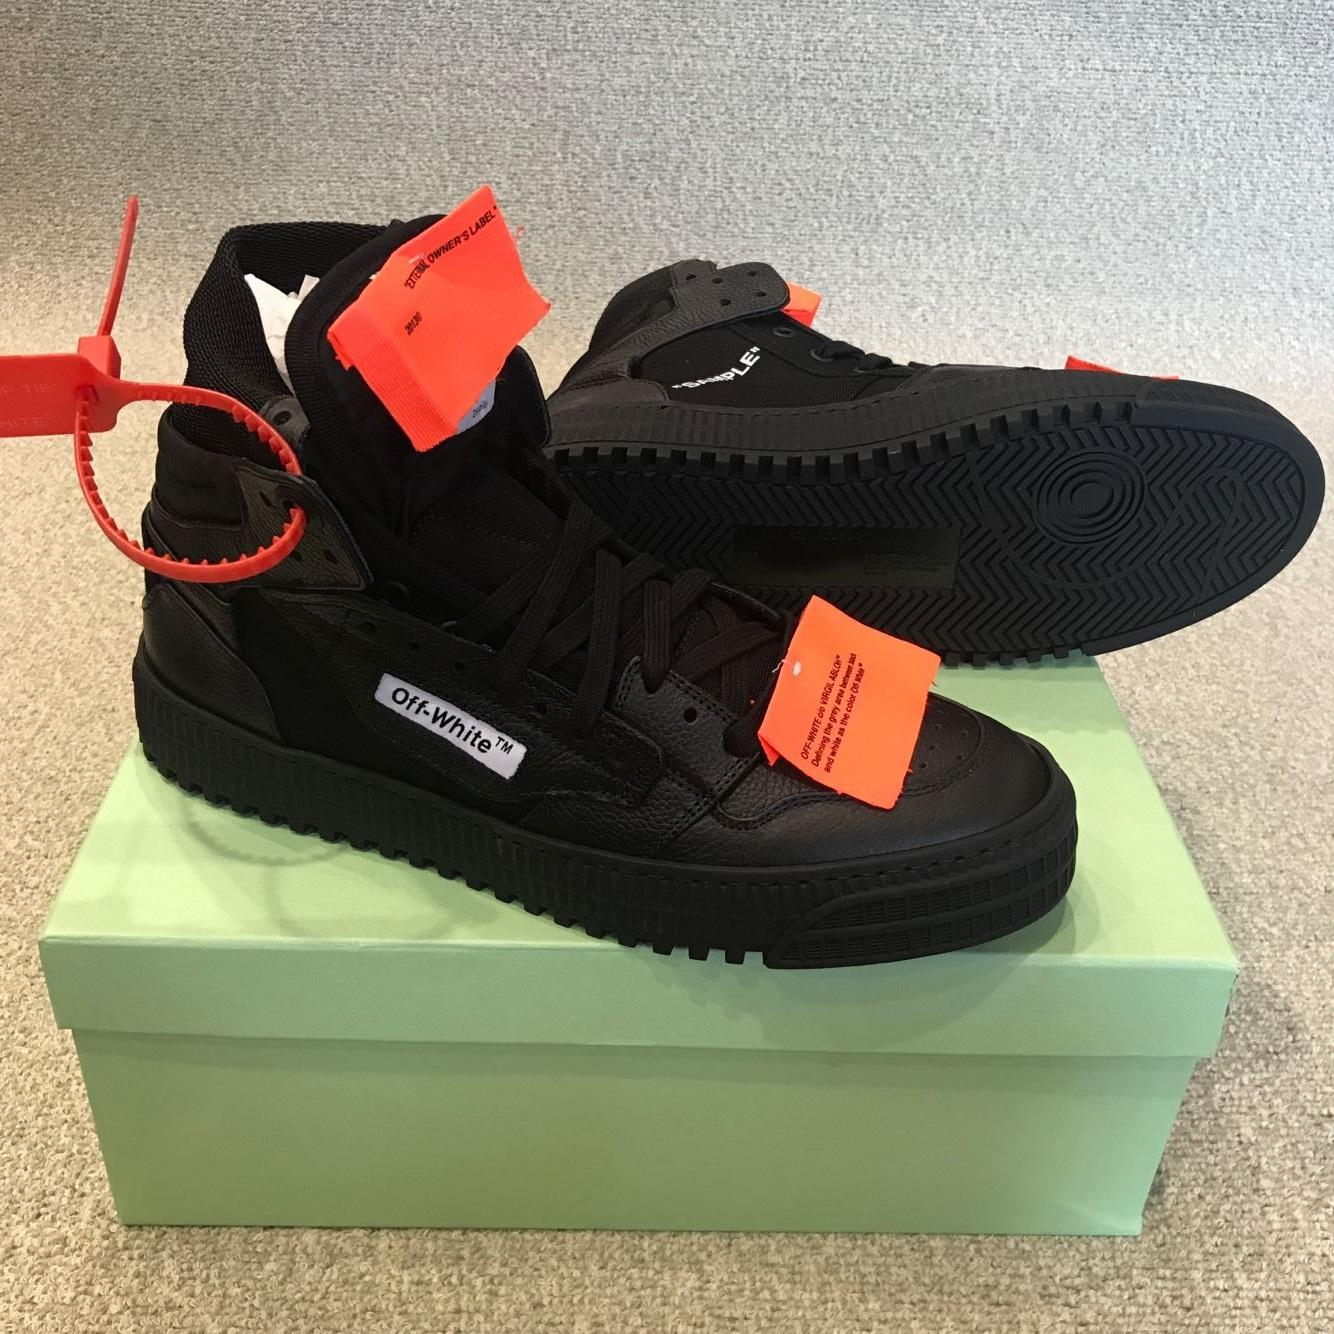 Off-White Men's Off Court High-Top Leather Sneakers men women luxury brand shoes 5